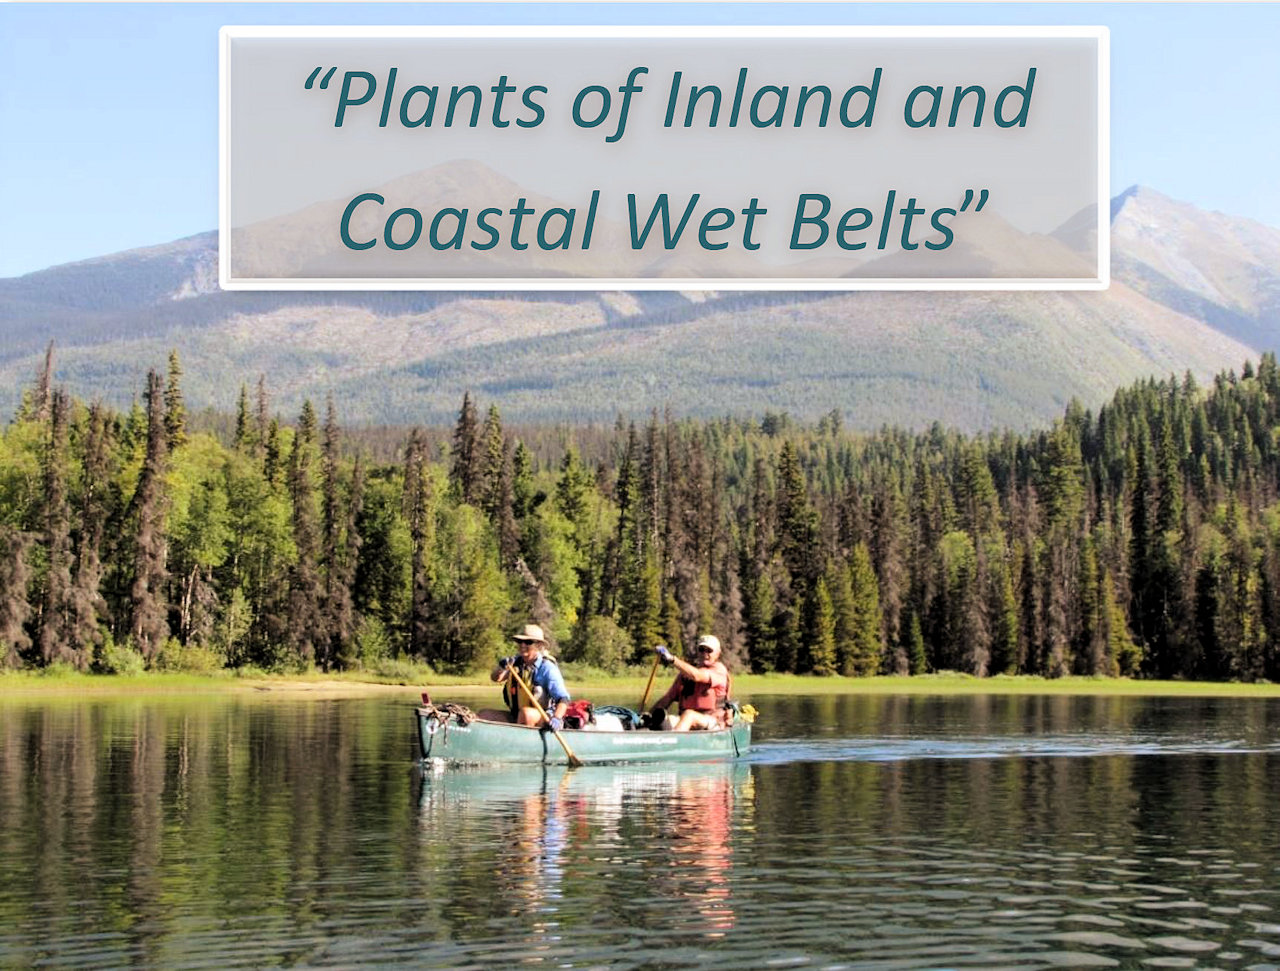 April 20, 2016 - Plants of Inland and Coastal Wet Belts